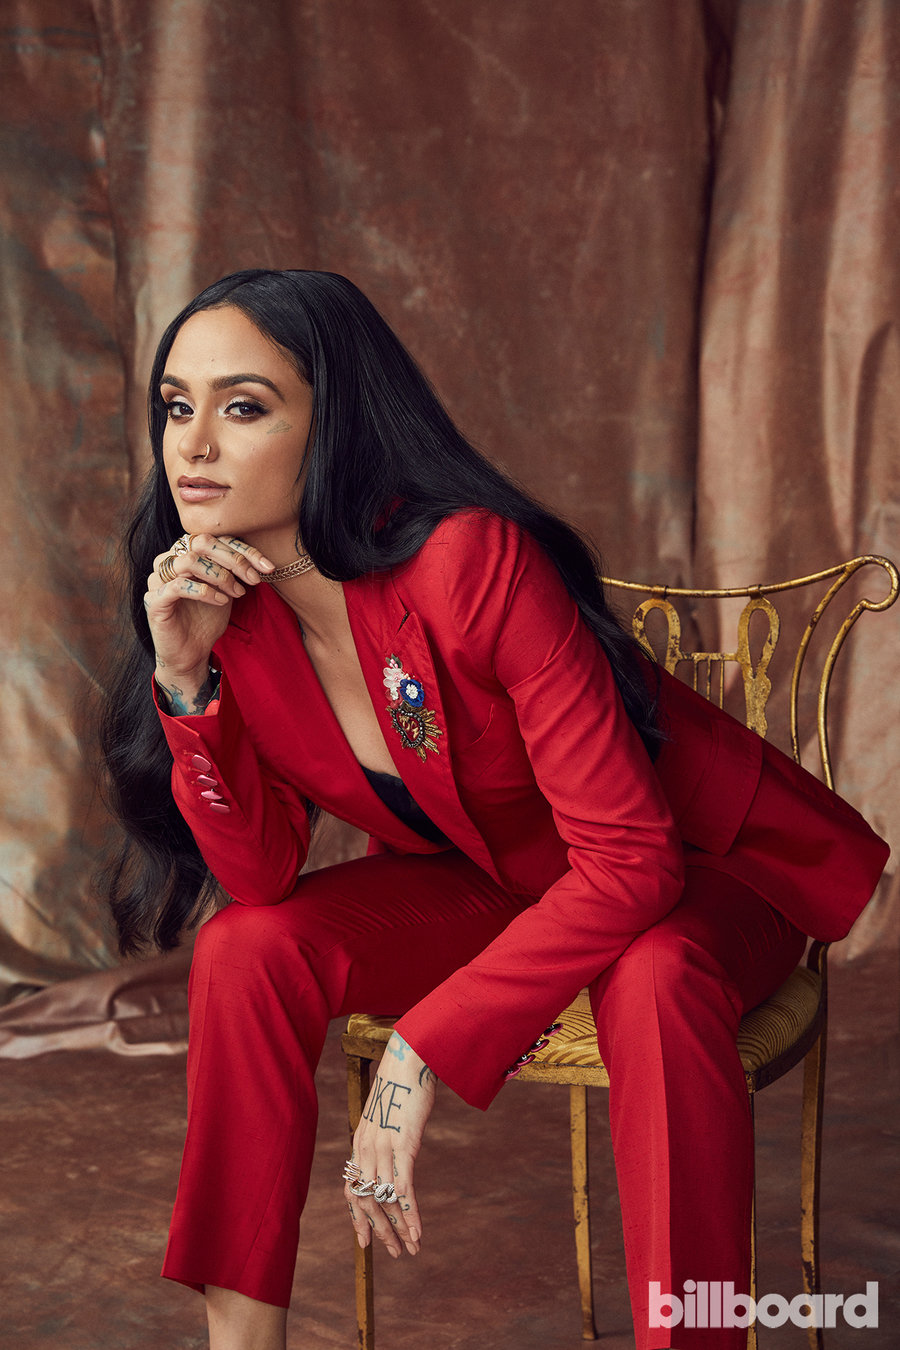 kehlani-bb-wim-portraits-2017-billboard-1240.jpg